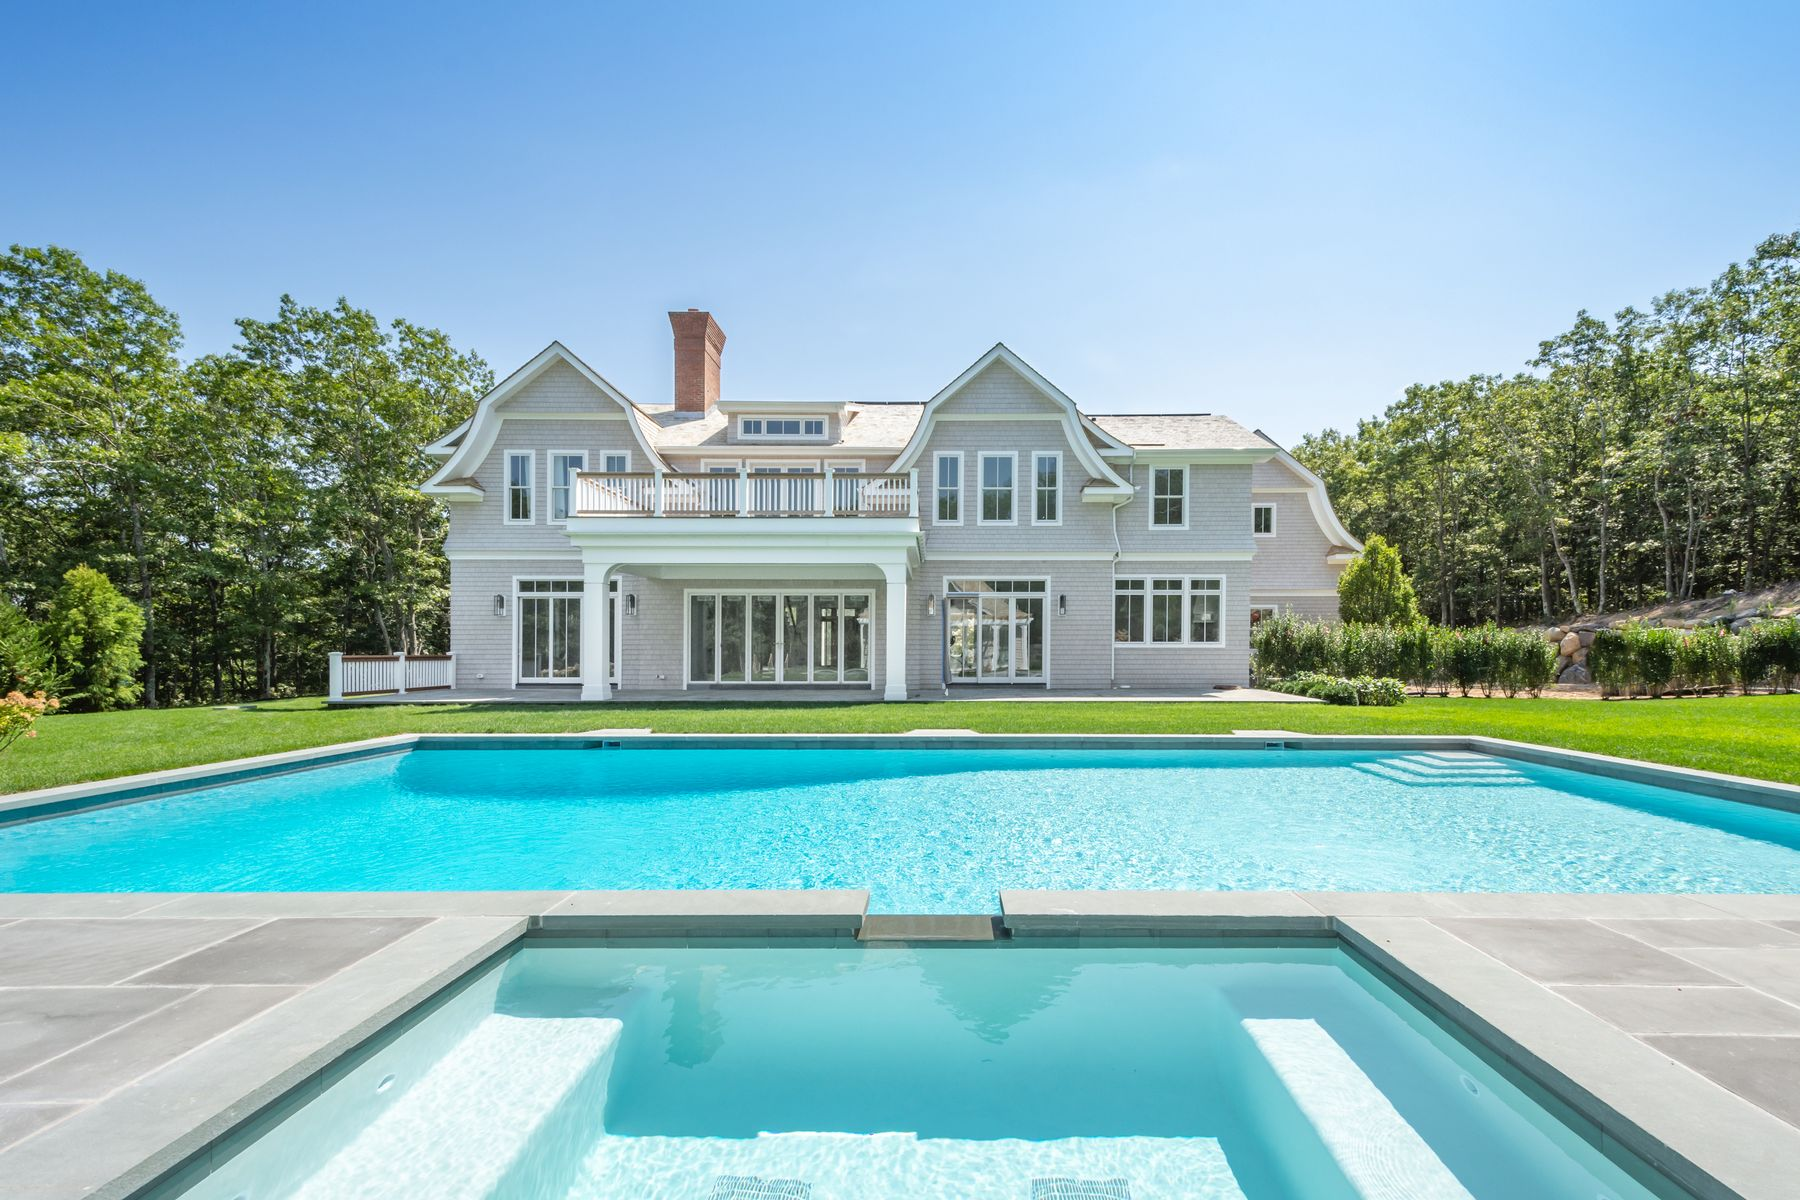 Single Family Home for Active at New 8 Bedroom Gated Estate w/ Tennis 1348 Deerfield Road Water Mill, New York 11976 United States